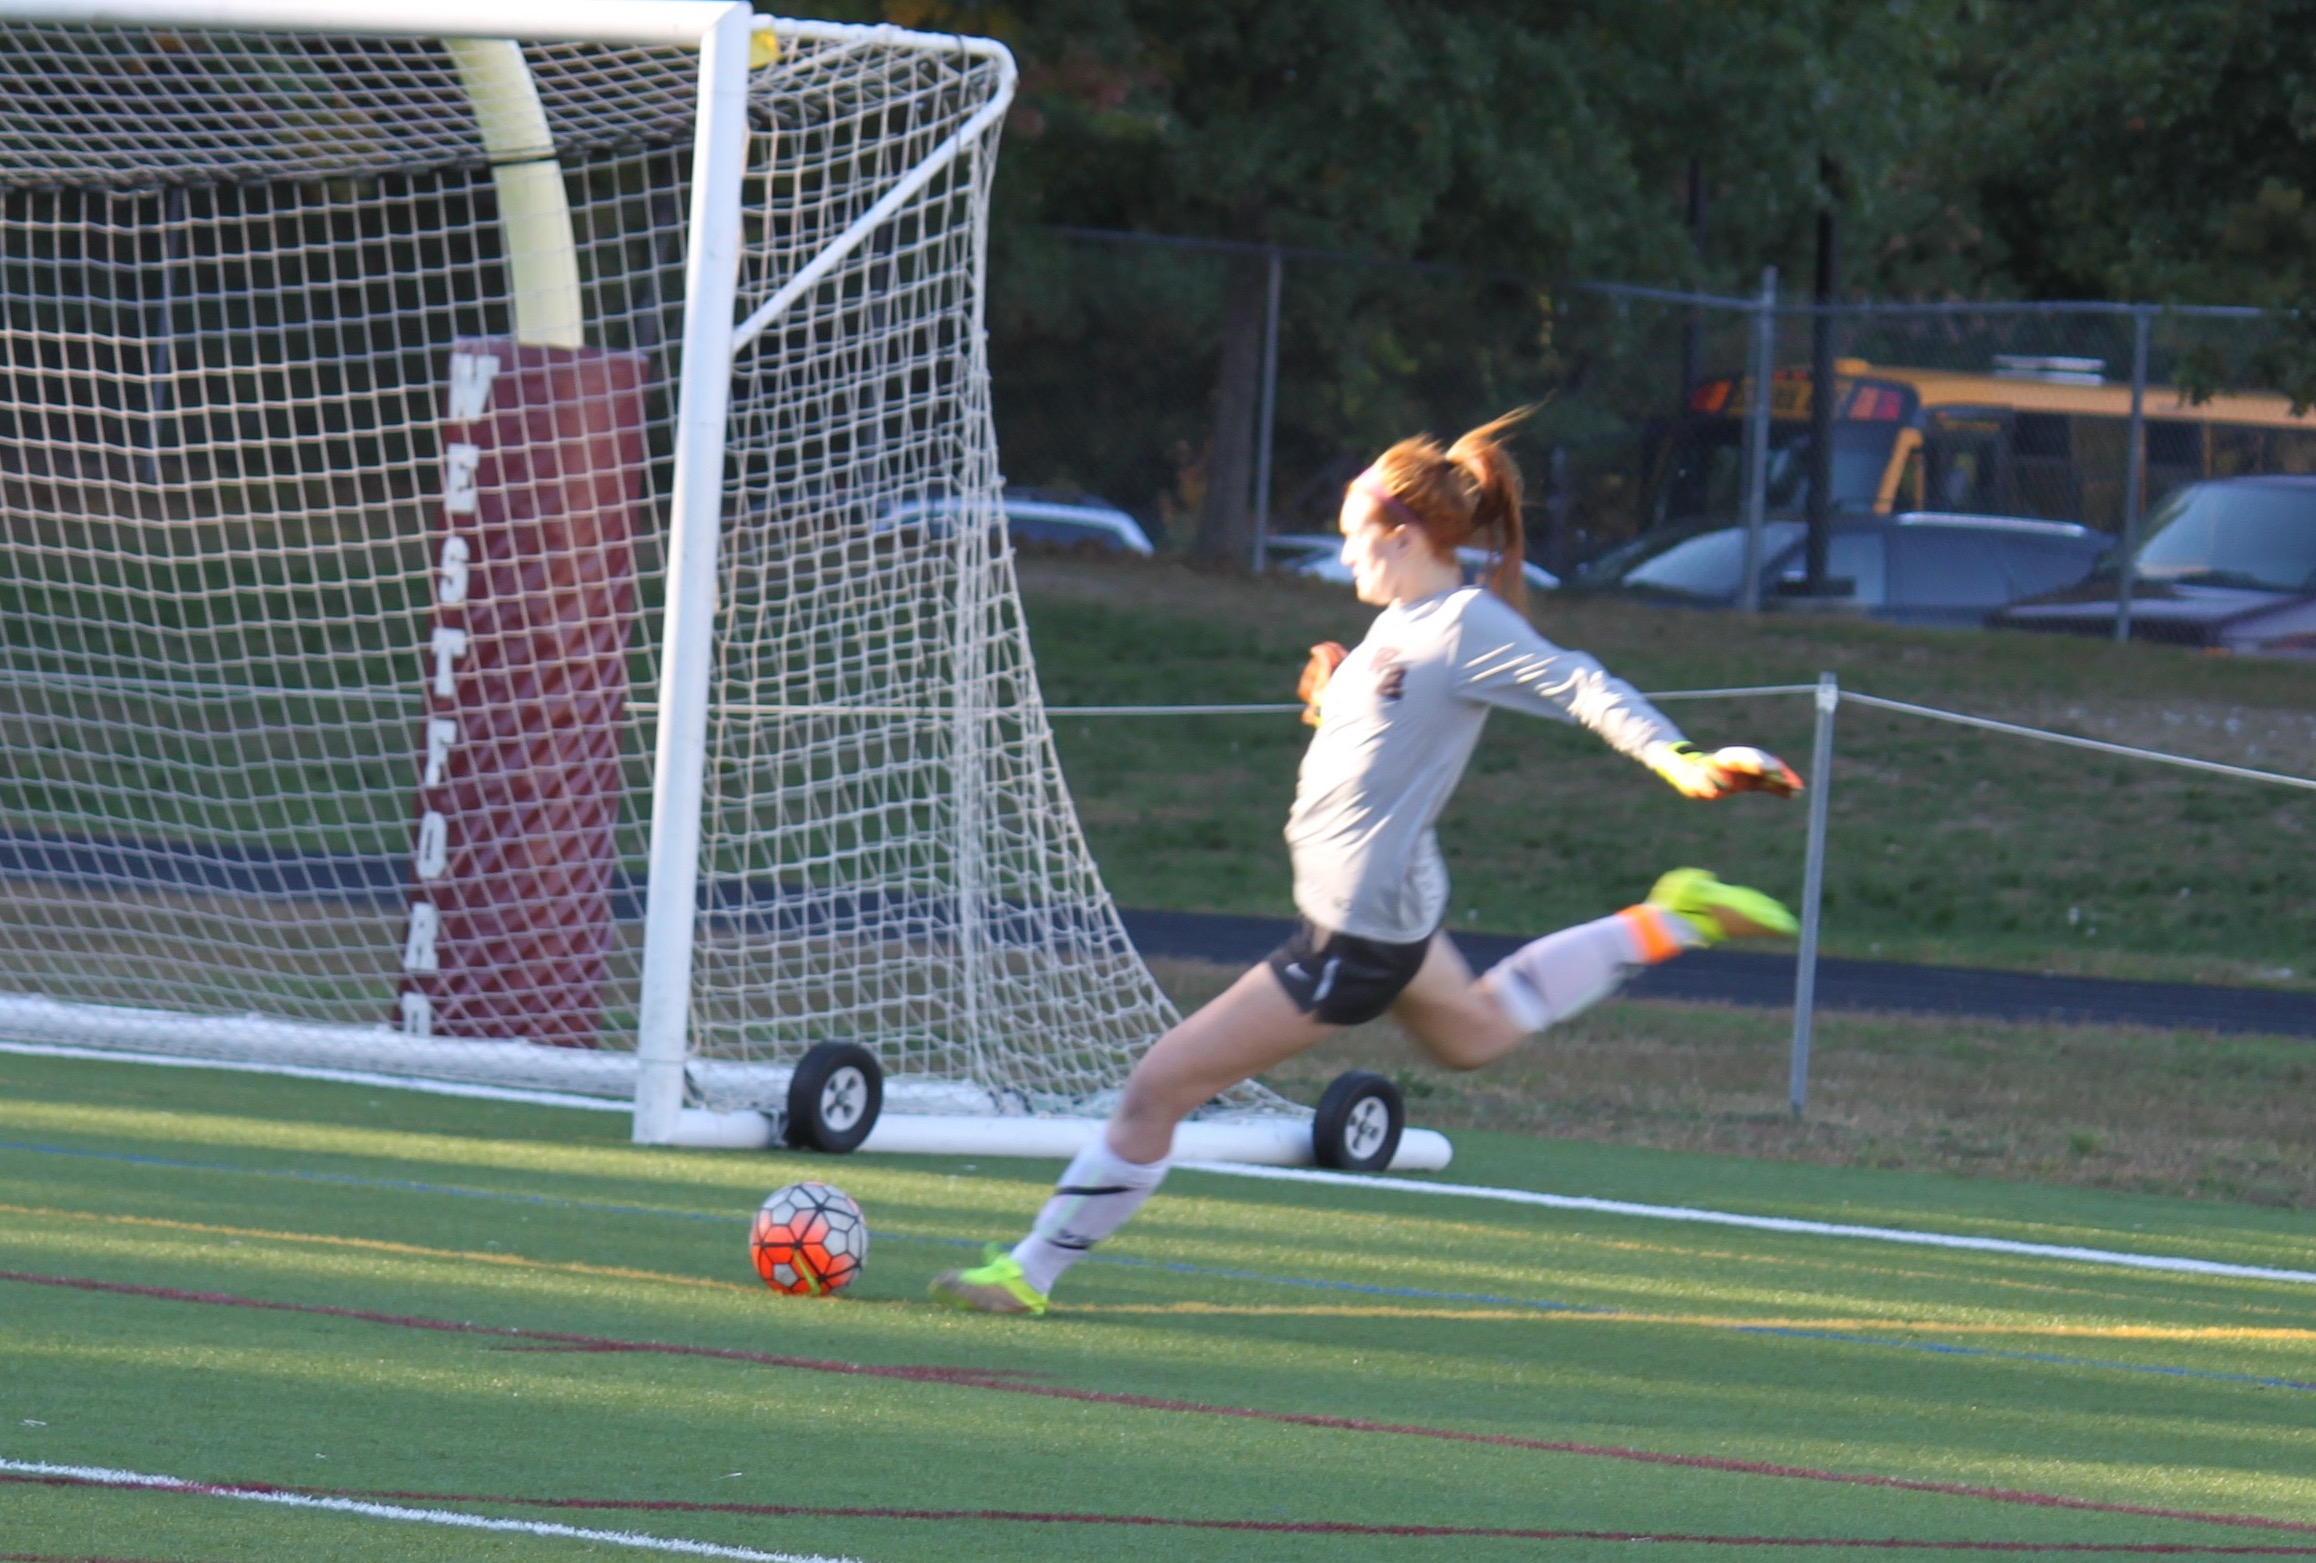 Goalkeeper+Emma+O%27Sullivan+sends+the+ball+toward+the+Weston+goal.